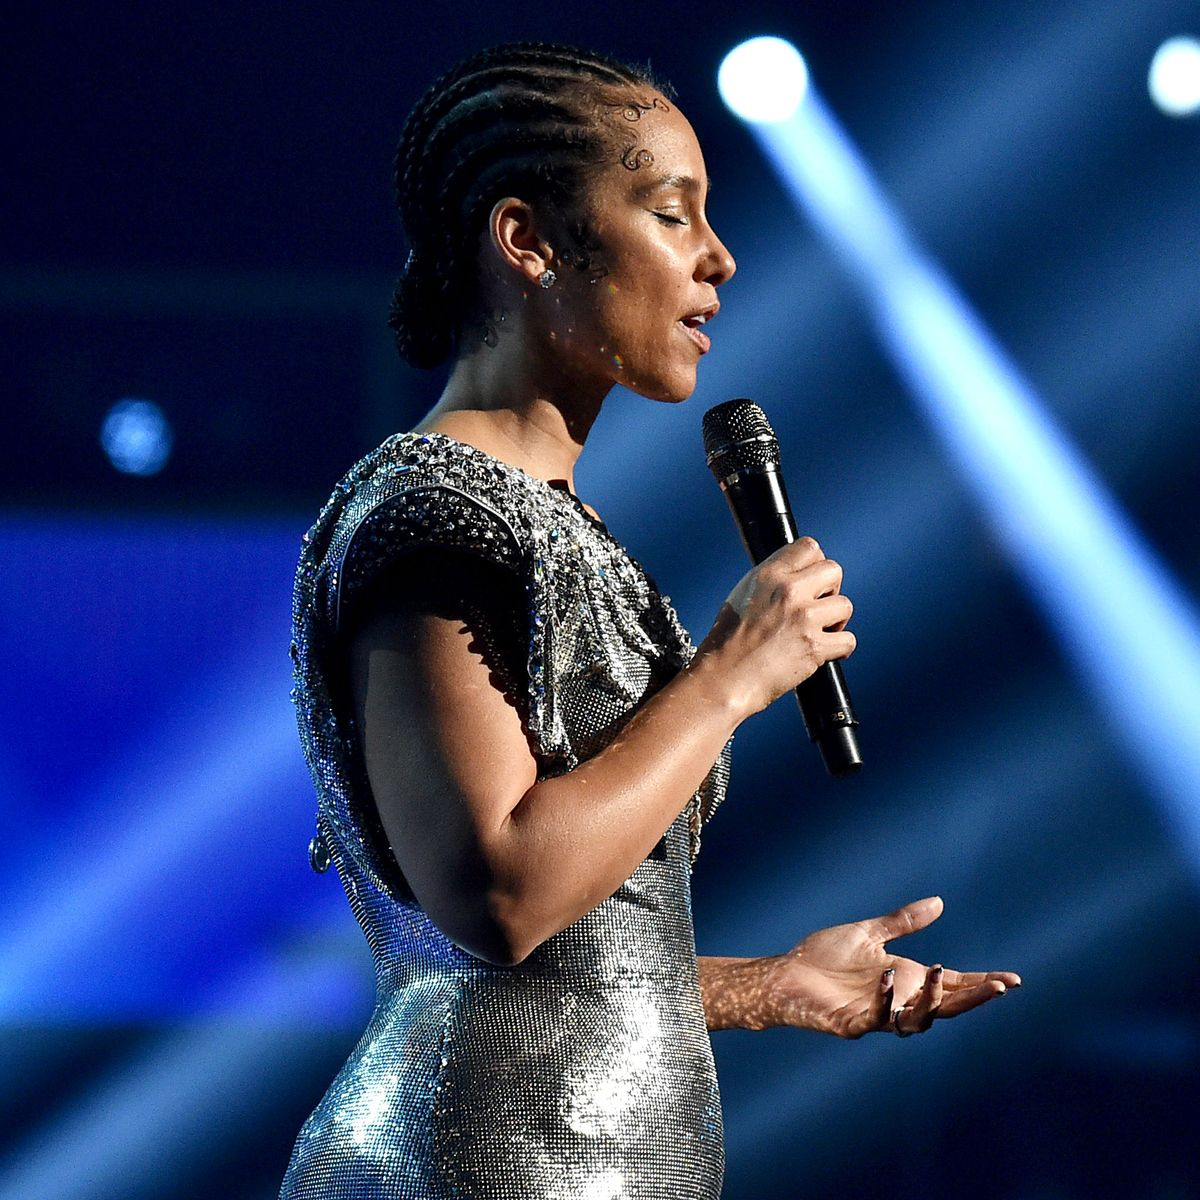 grammys 2020 review alicia keys leads an unexpected night grammys 2020 review alicia keys leads